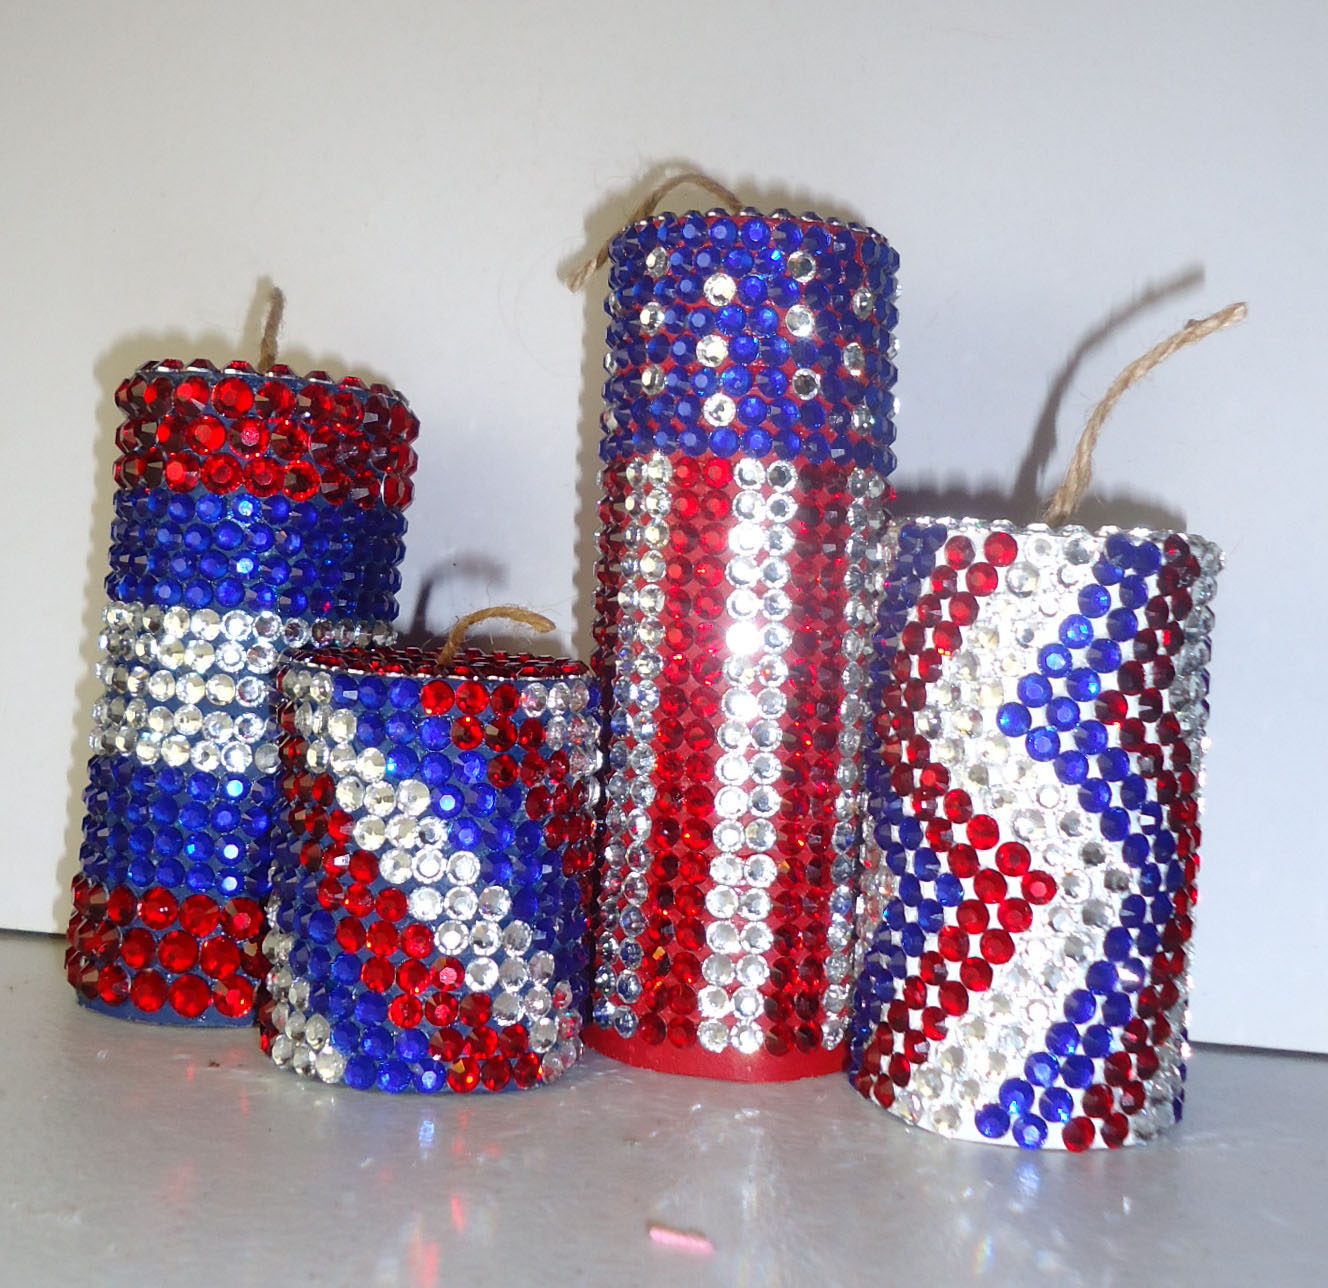 frugal home design easy inexpensive 4th of july decor diy if you are looking for easy and cheap decoration ideas for the 4th of july you have come to the right place display these beautiful jeweled firecrackers